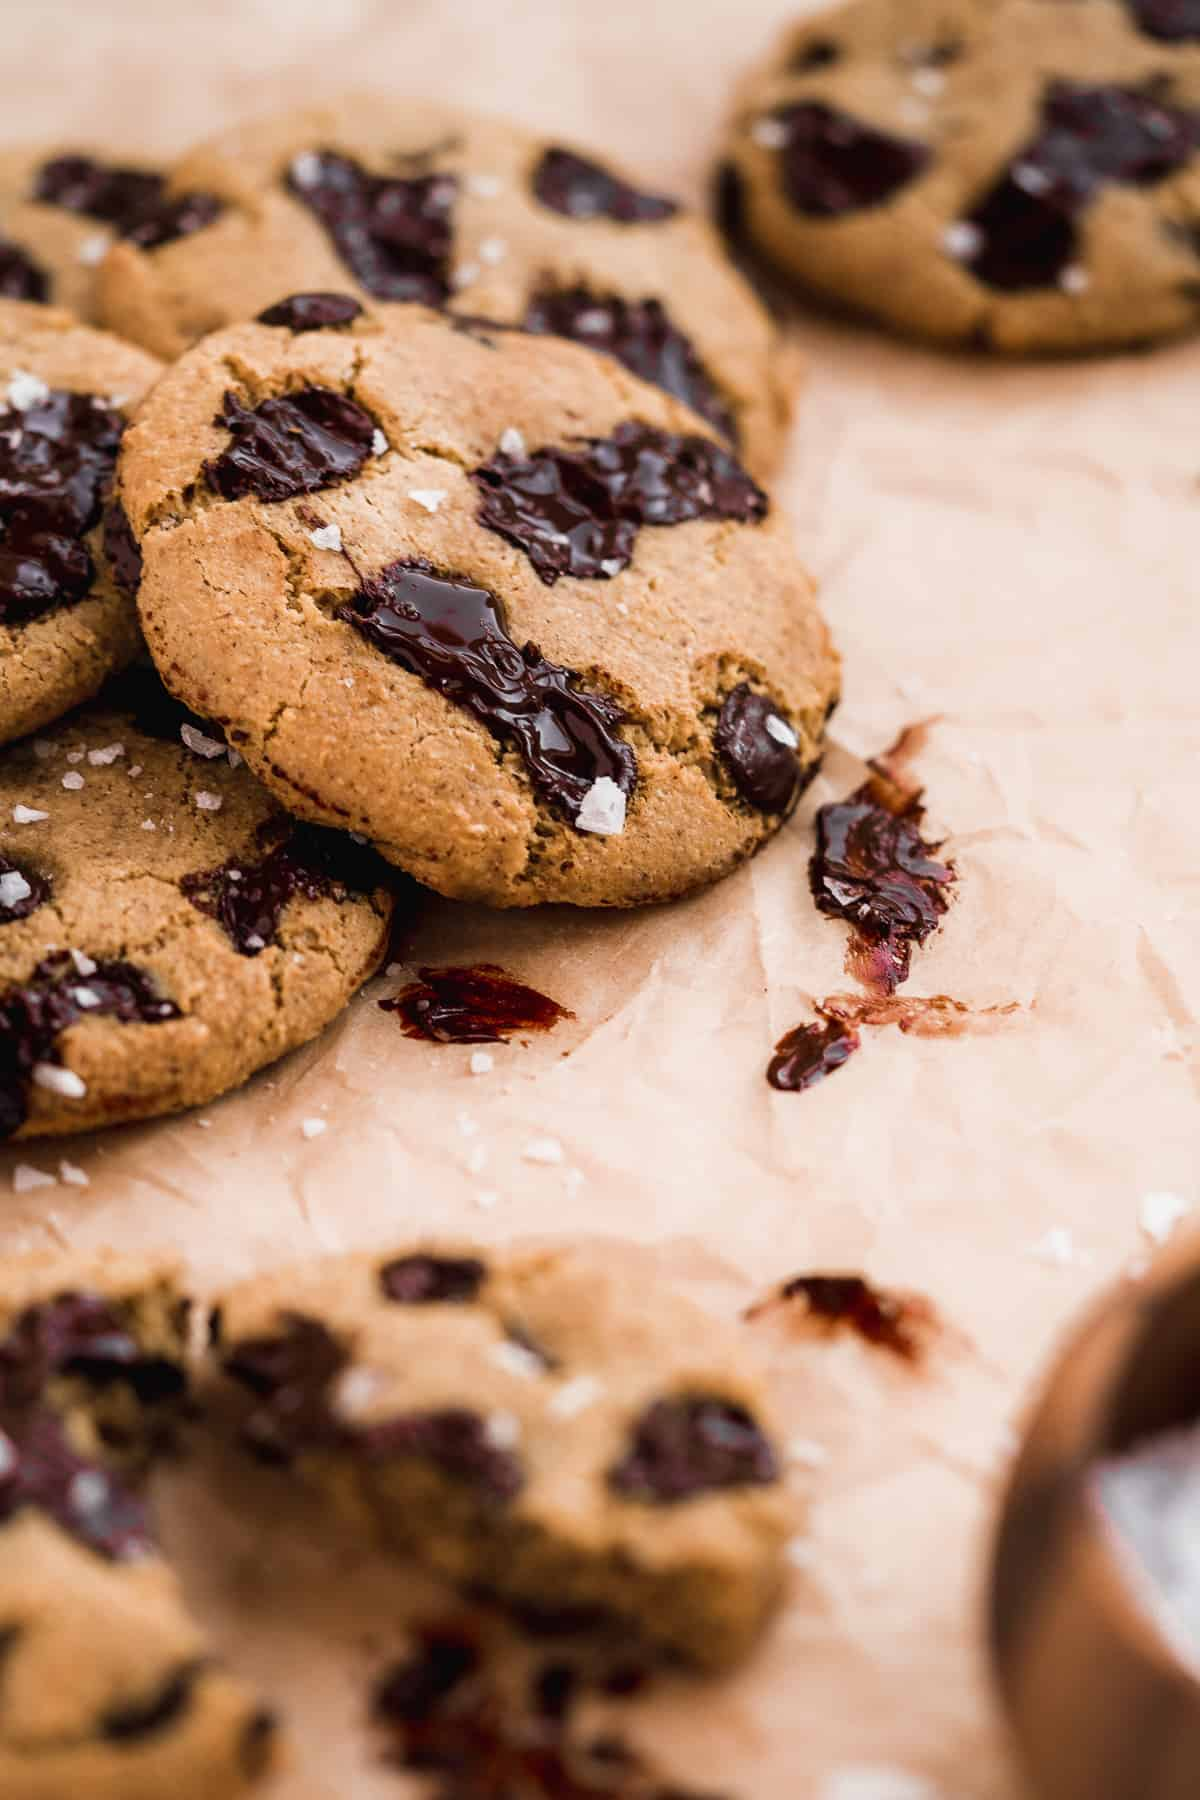 Several Almond Butter Chocolate Chip Cookies are mounded on top of one another on parchment paper.  Chocolate chips are gooey and look delicious.